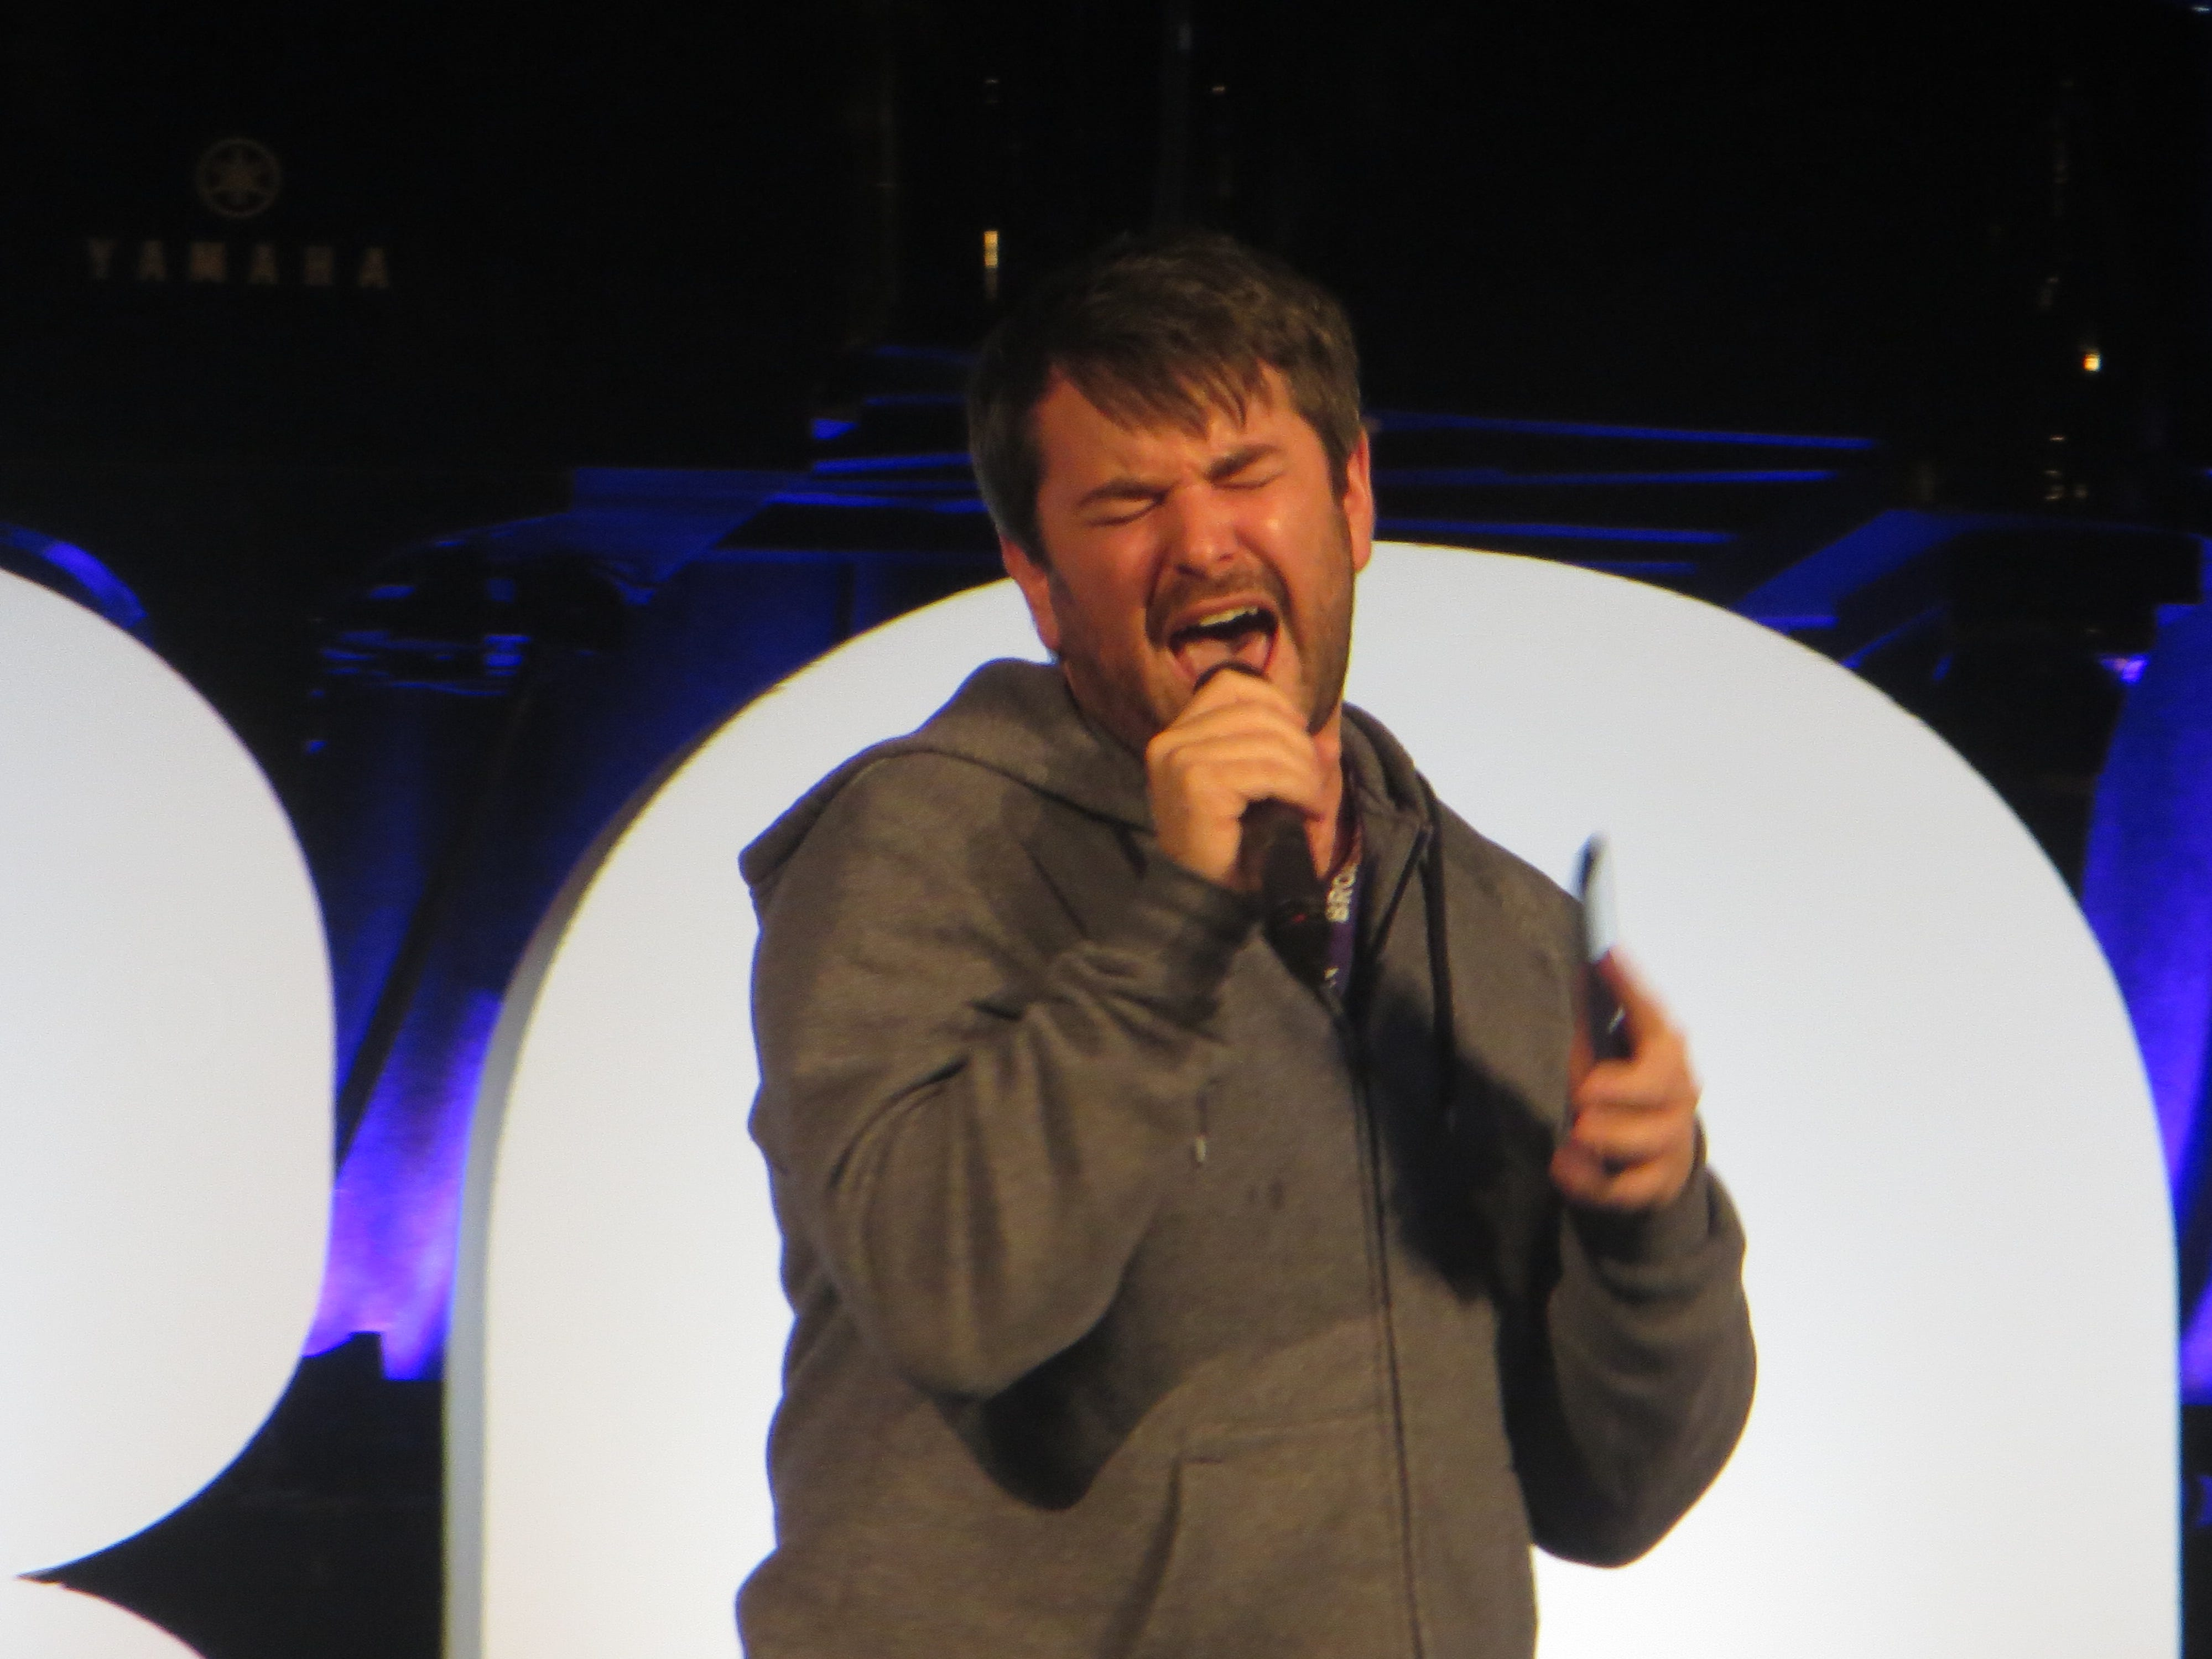 Alex Brightman performs during BroadwayCon Jukebox at BroadwayCon 2019, held Jan. 11 to 13, 2019, at the New York Hilton Midtown in Manhattan.